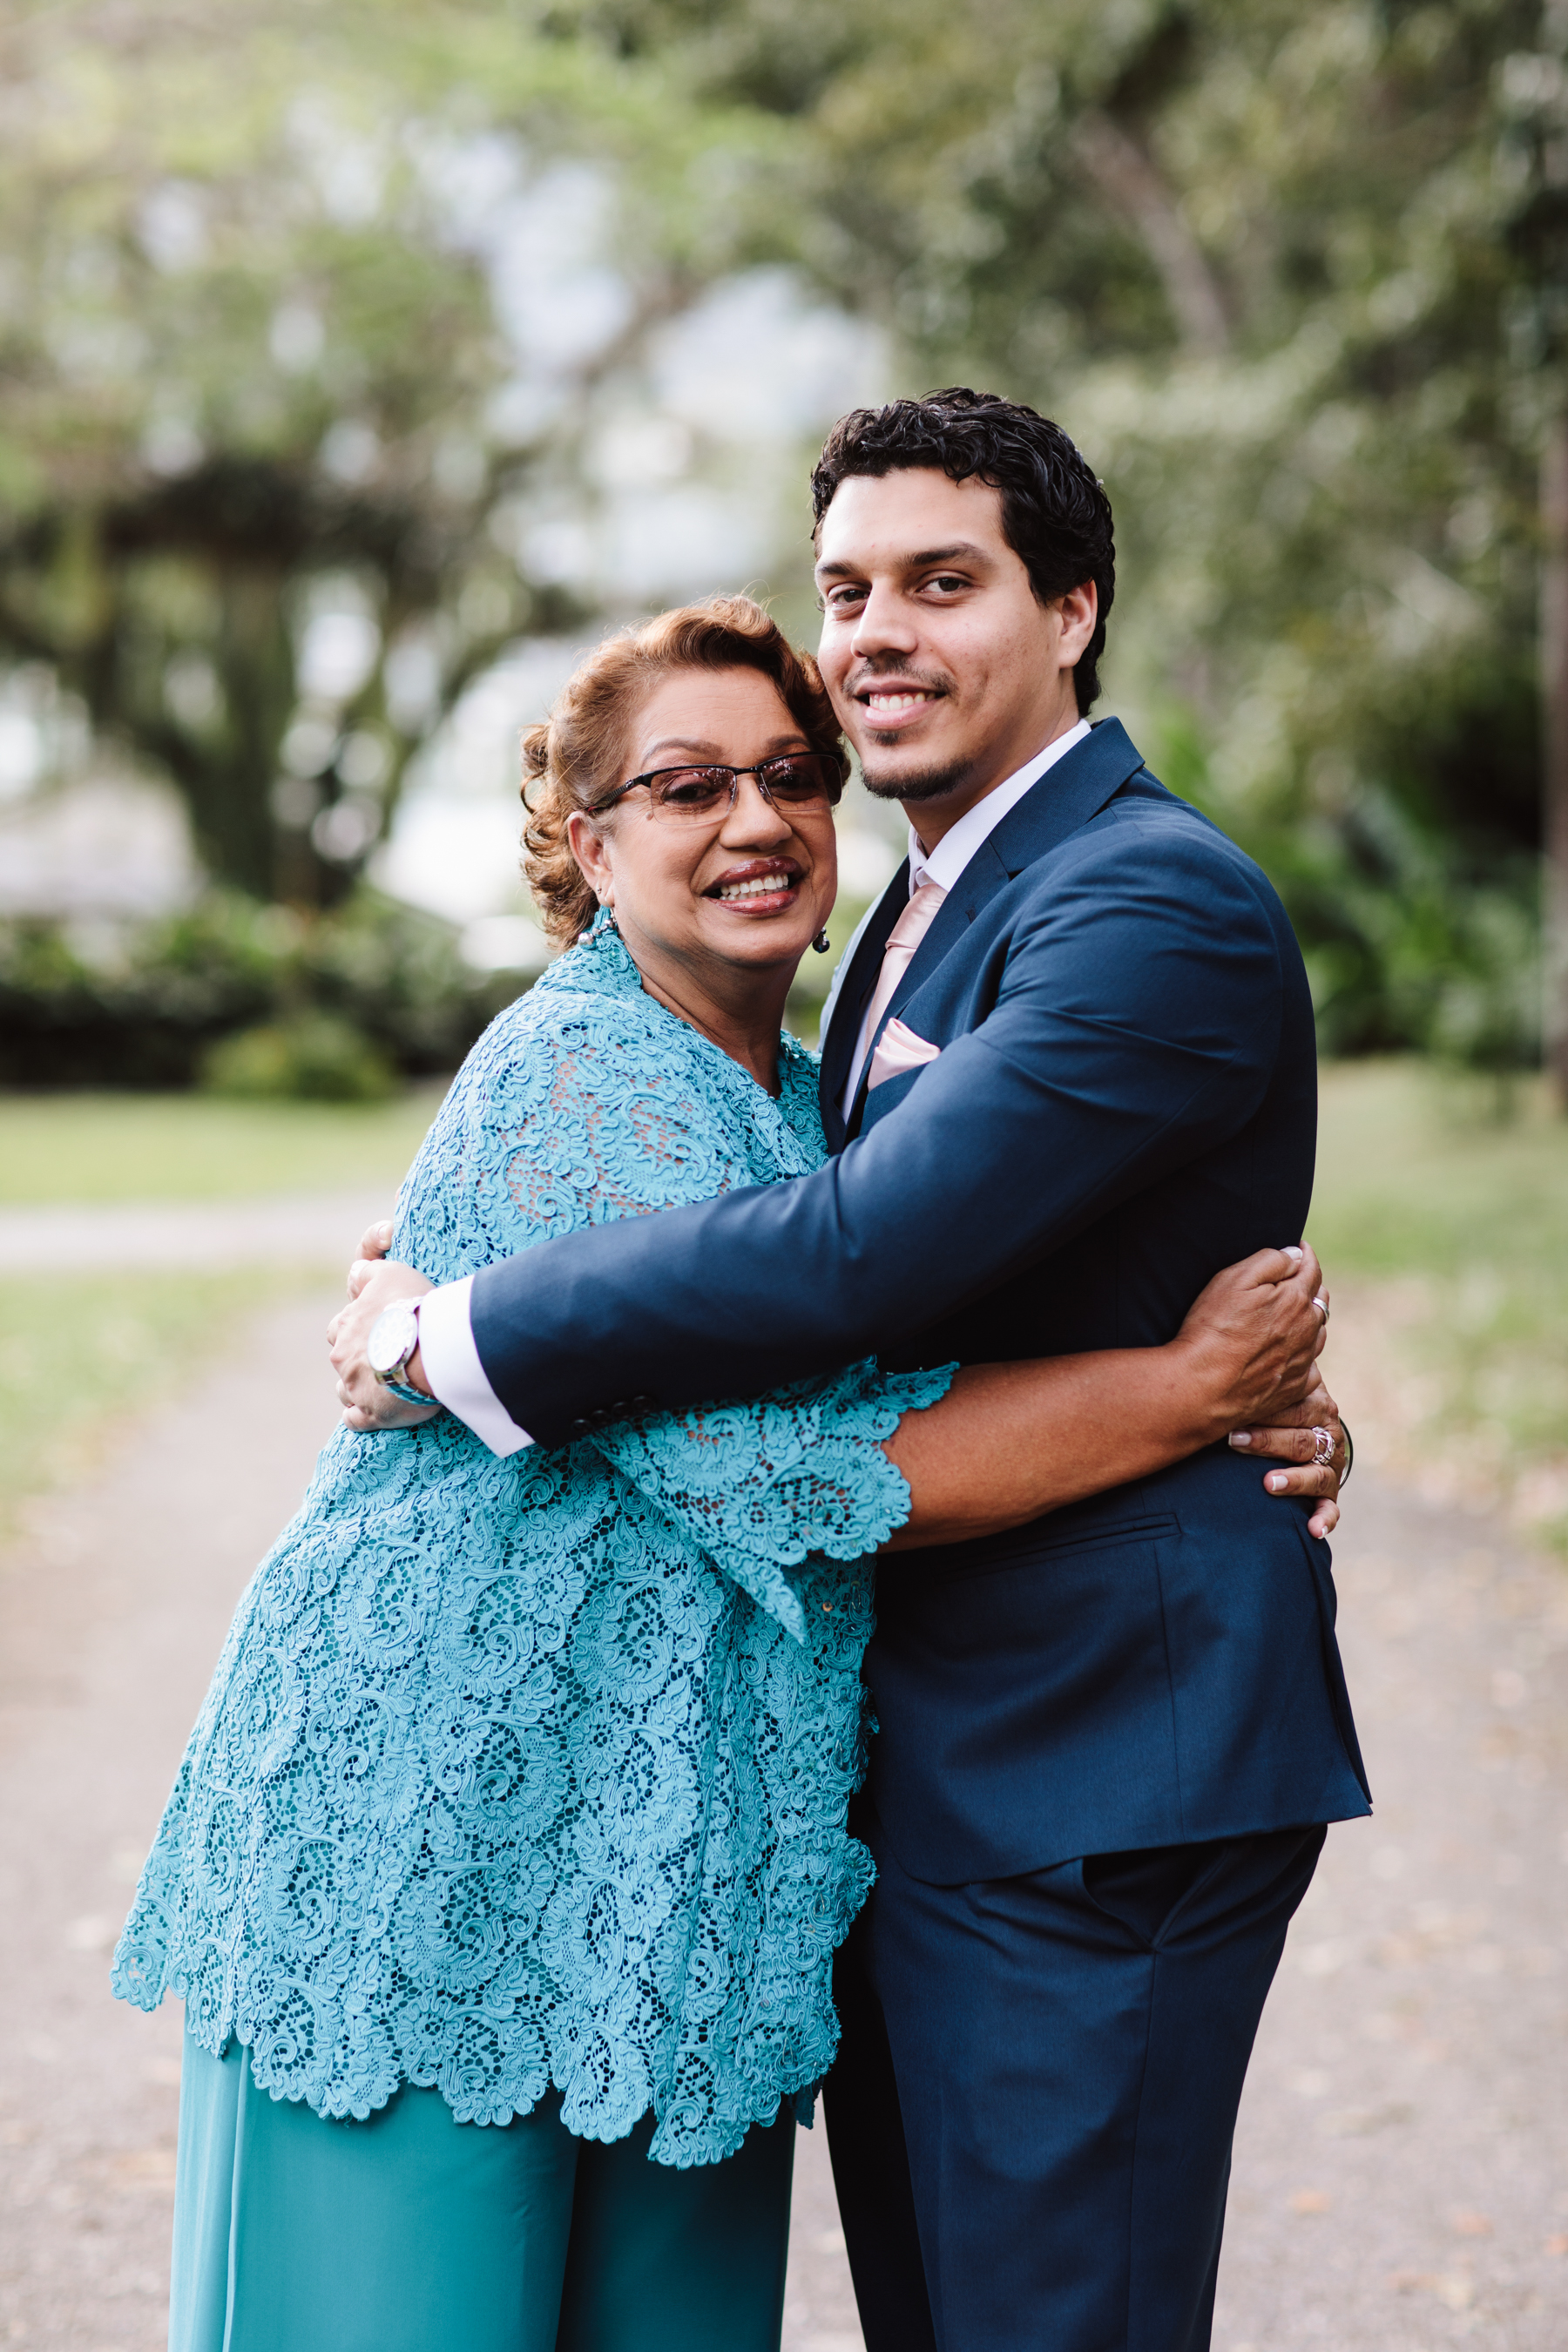 Lori & Mark's Celebratory Blend Of Love And Family In Trinidad & Tobago, Photography by Julie Charlett Photography for Destination Wedding magazine ADRIANA.